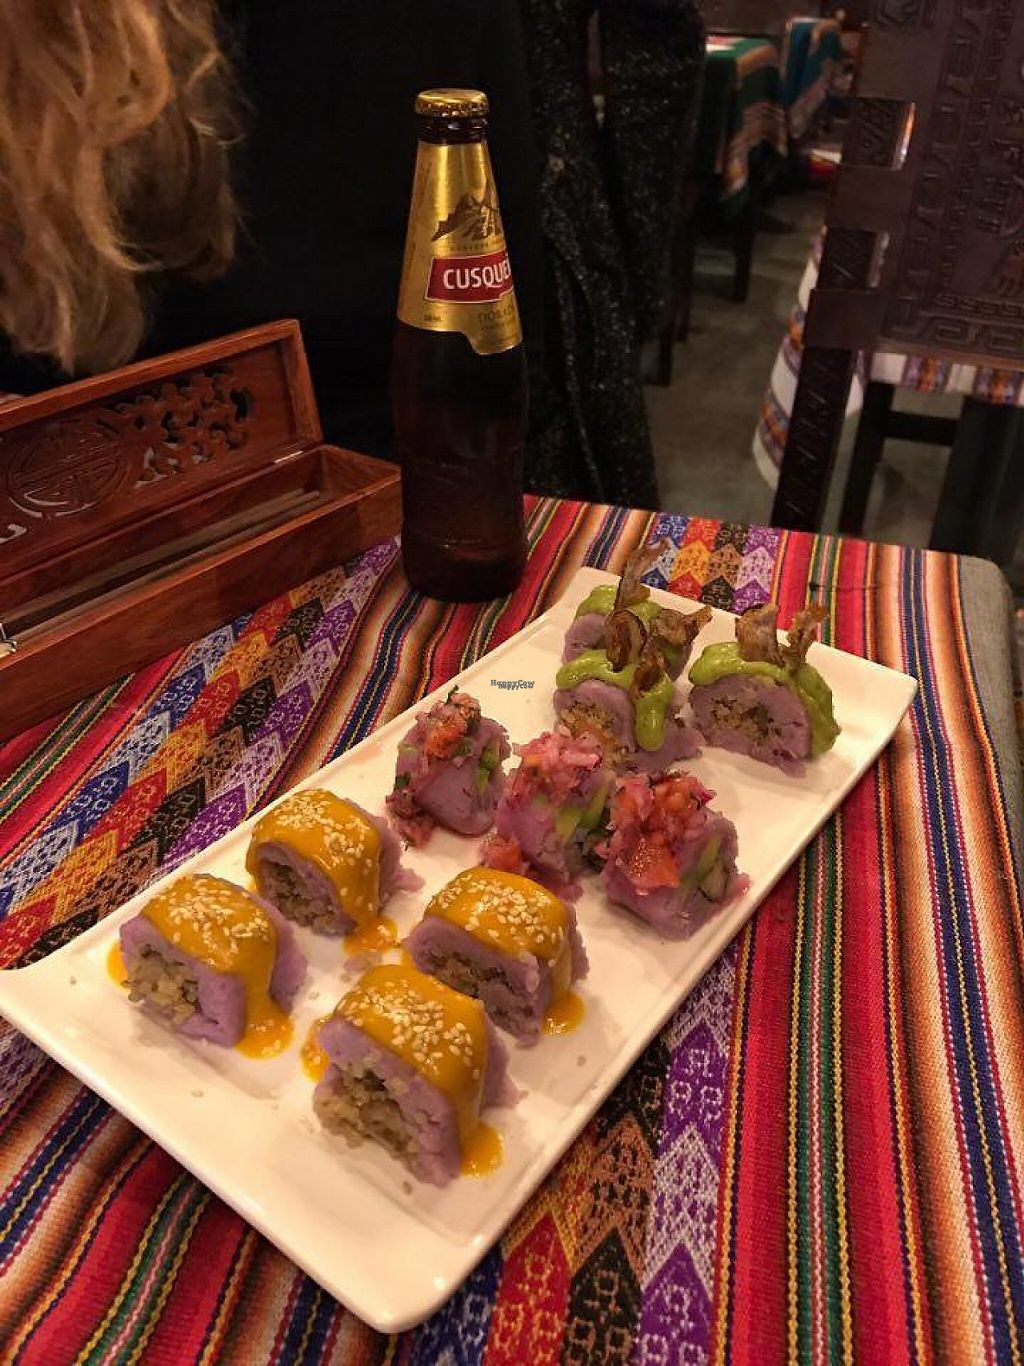 """Photo of Dimension Latina  by <a href=""""/members/profile/VictoriaForget"""">VictoriaForget</a> <br/>Vegan causushis (peruvian sushis) <br/> November 23, 2016  - <a href='/contact/abuse/image/82664/193612'>Report</a>"""